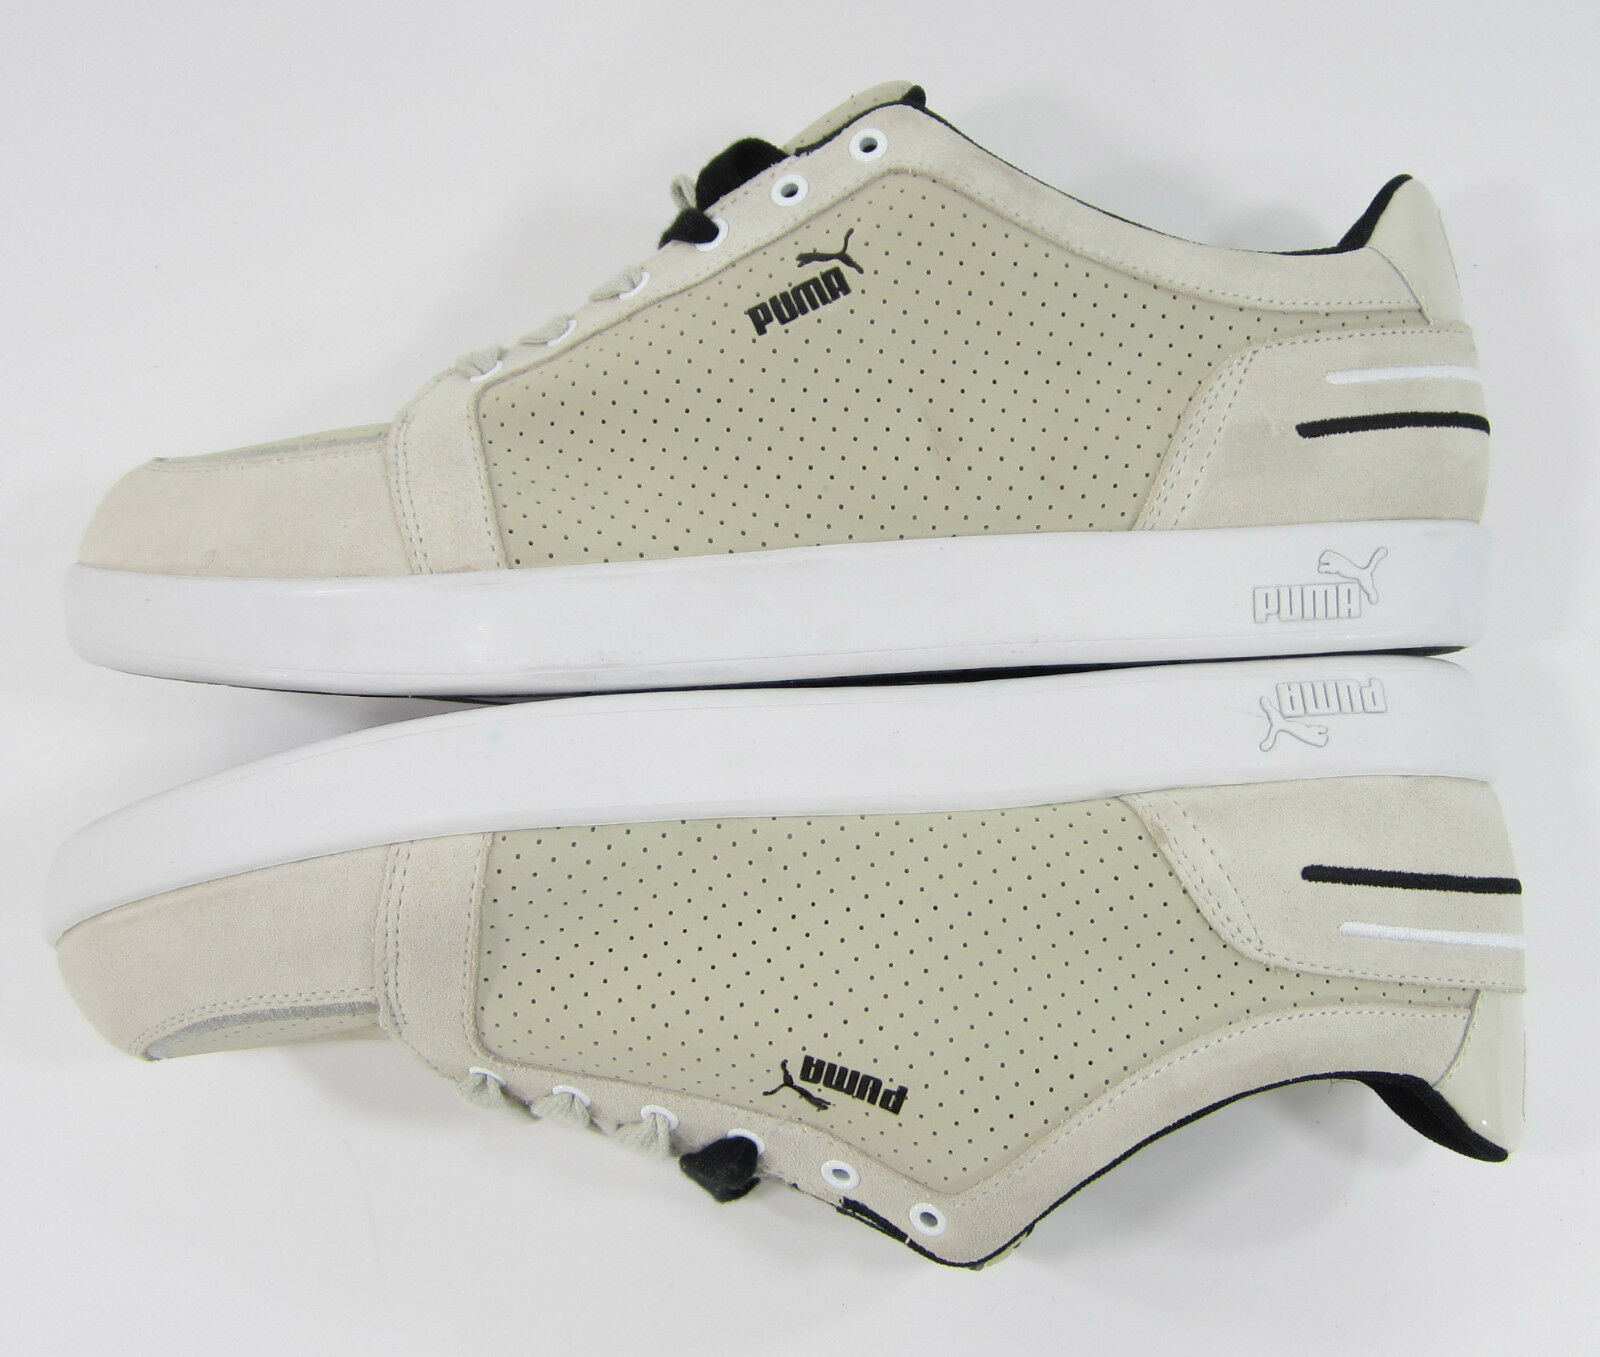 f42403b8b070 ... Puma Chaussures Trip Double Lo Suede Perforated Beige Tan Sneakers  Sneakers Sneakers c6e488 ...